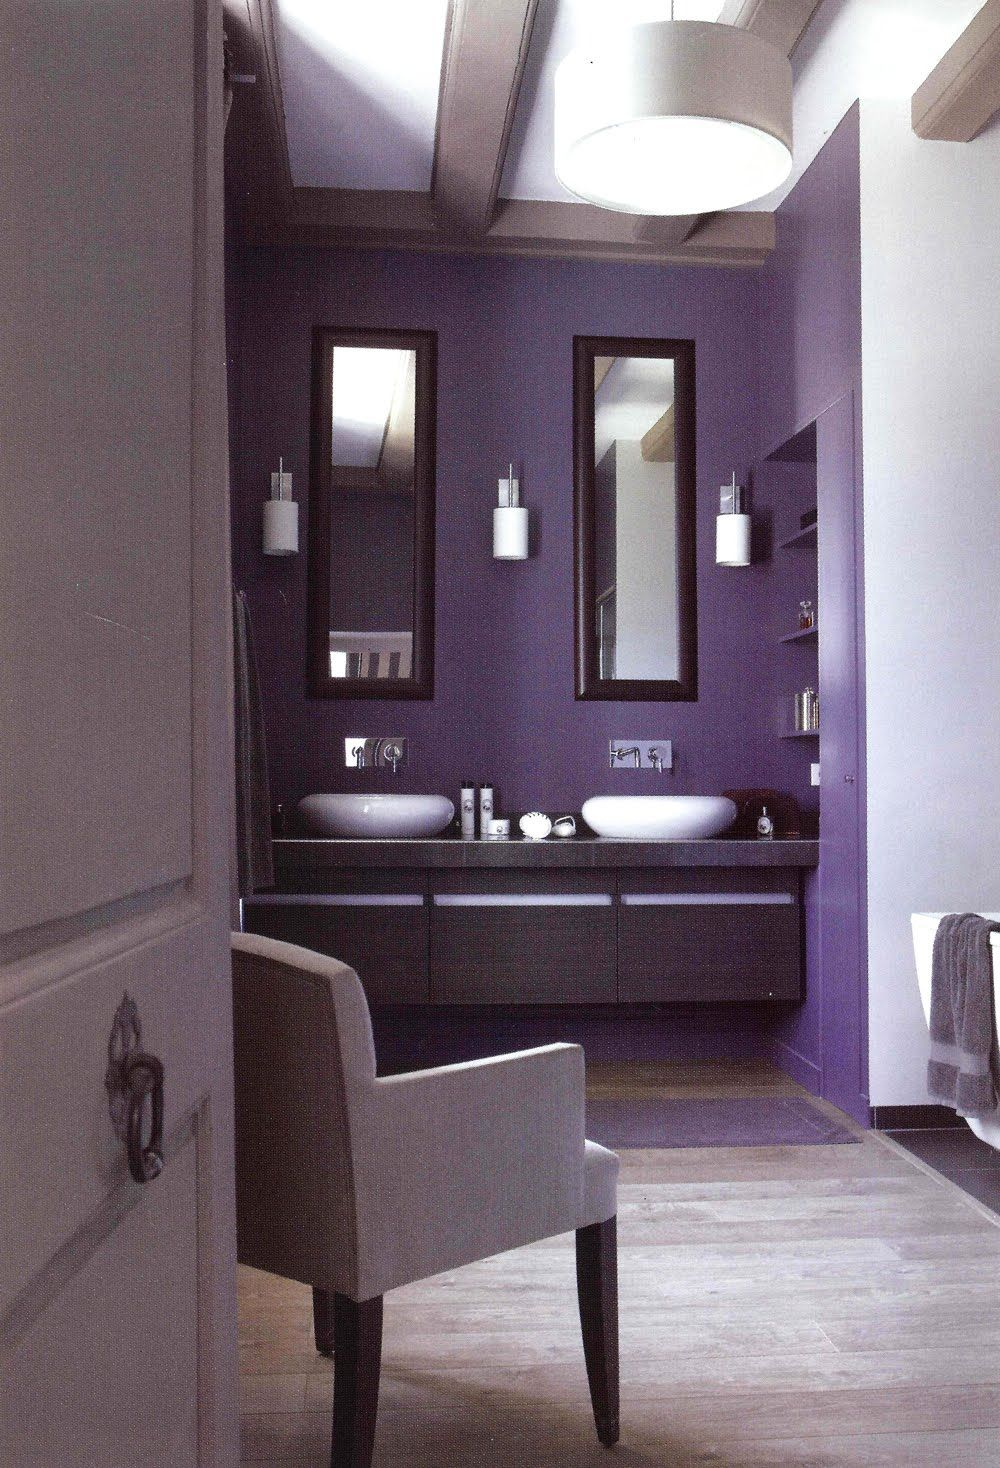 Enclosed Lanai Design Ideas, Purple Bathroom Purple Walls In A Modern Bathroom Description From Pinterest Com I Searched For This On B Purple Bathroom Decor Purple Bathrooms Home Decor